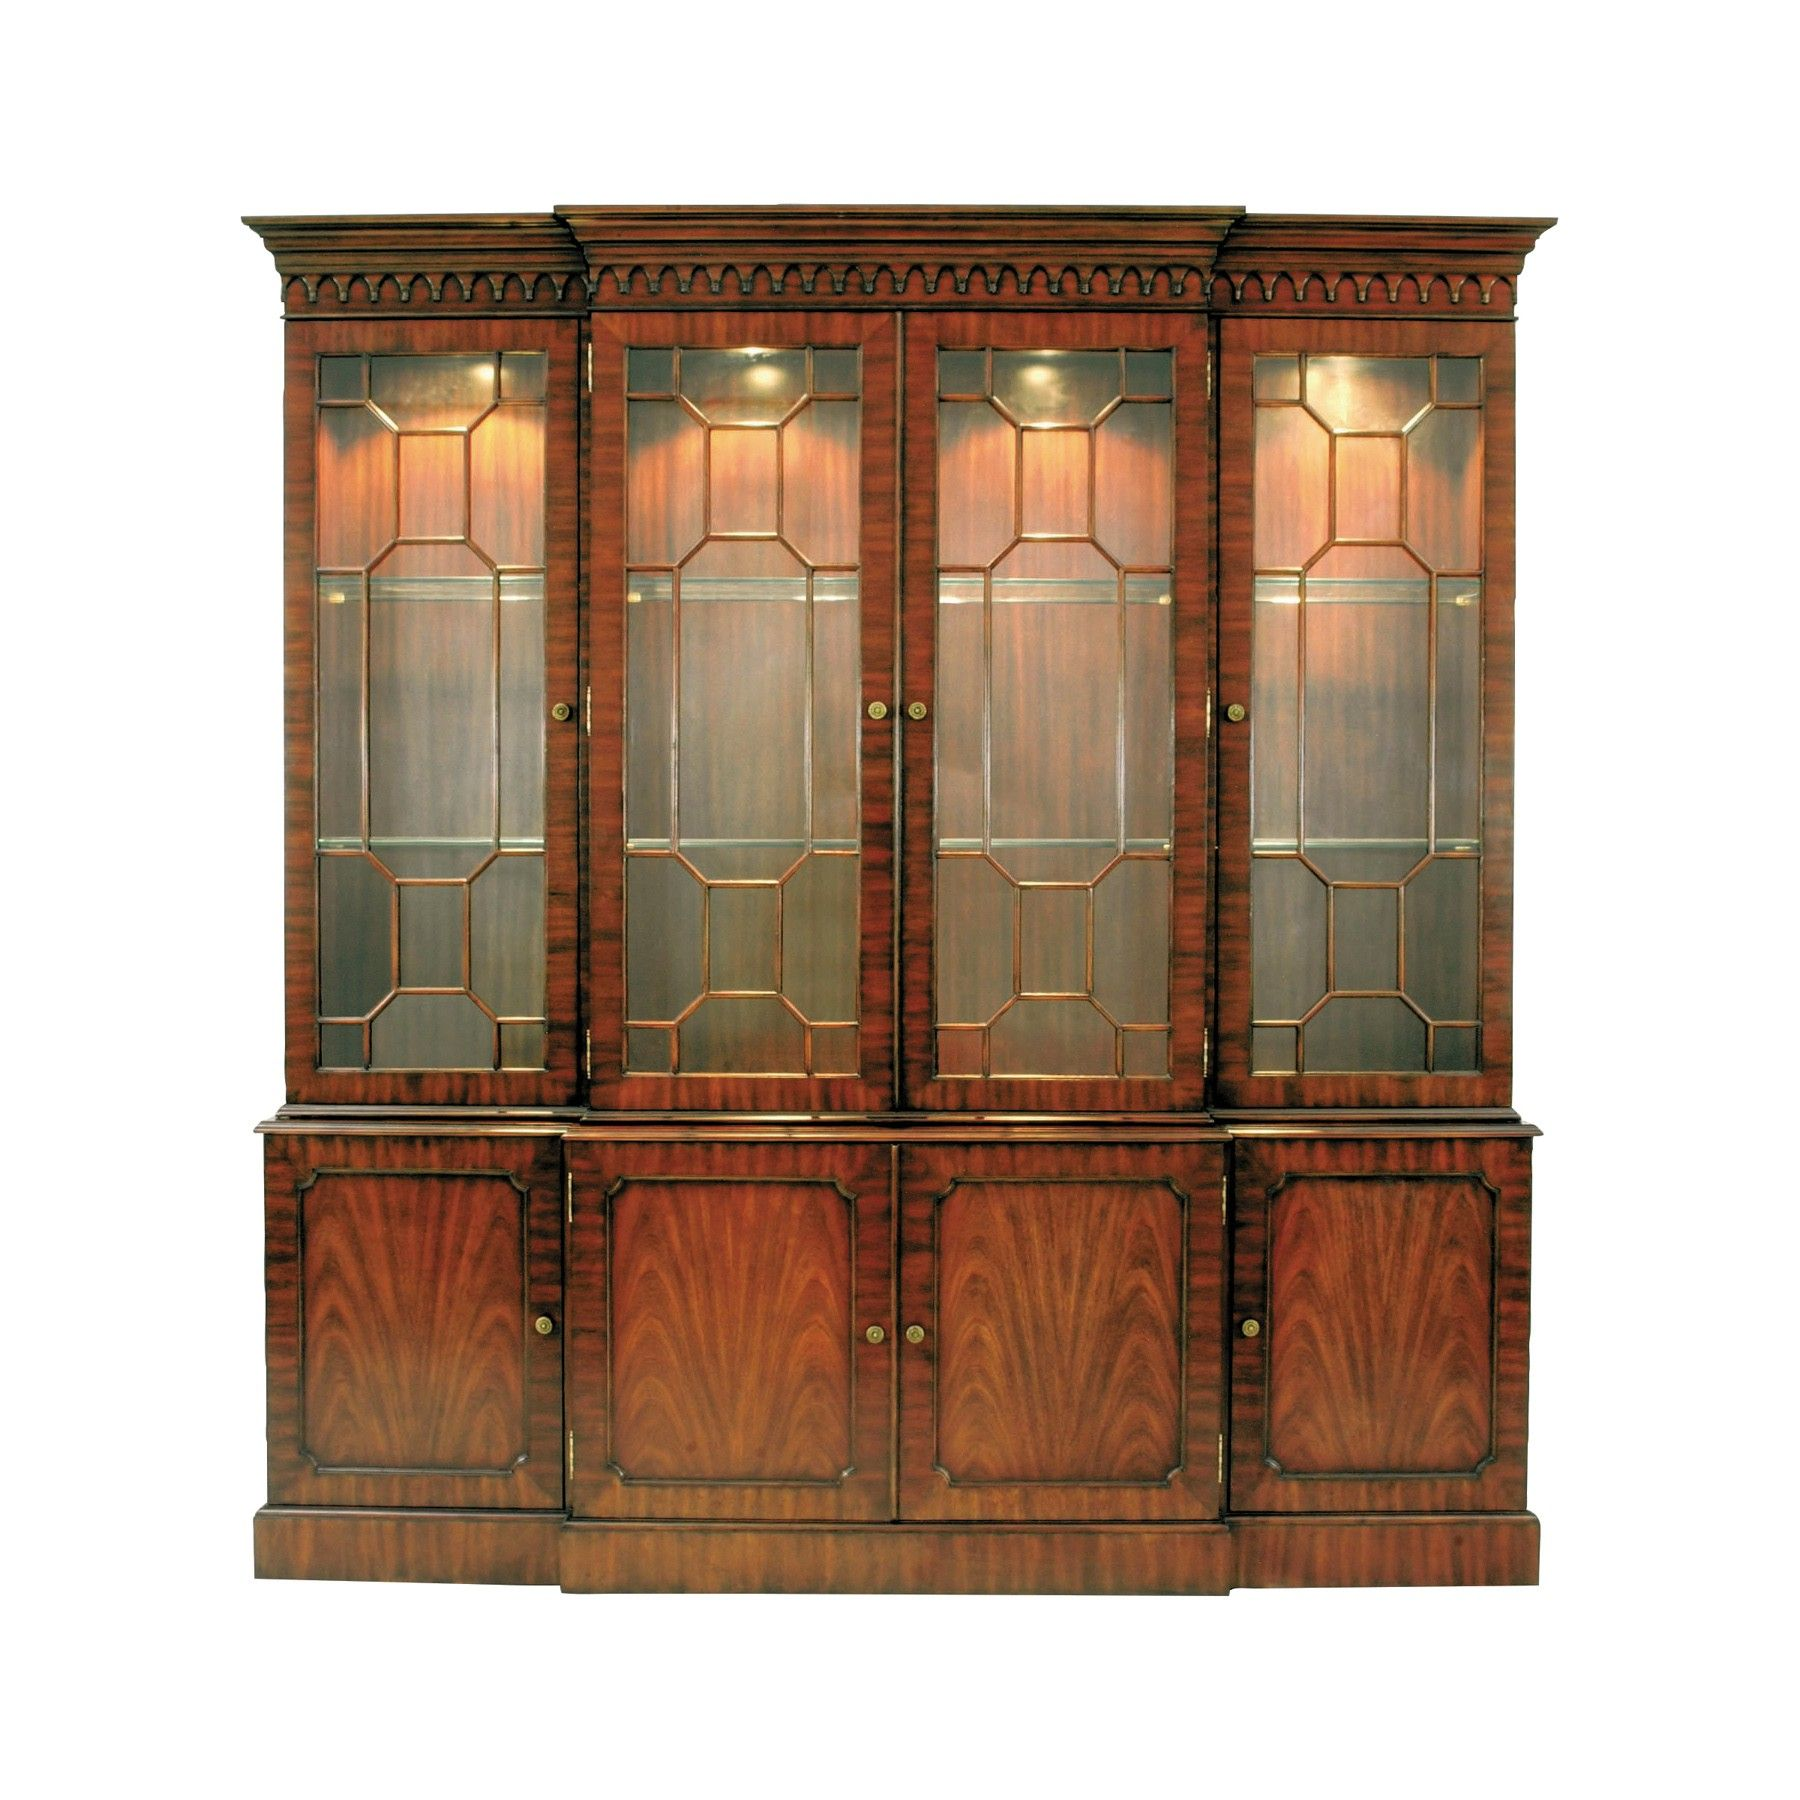 Shop For Maitland Smith Mahogany Breakfront Lighted China Cabinet Glass Shelves Light Antique Brass Mounts And Other Dining Room Cabinets At Whitley